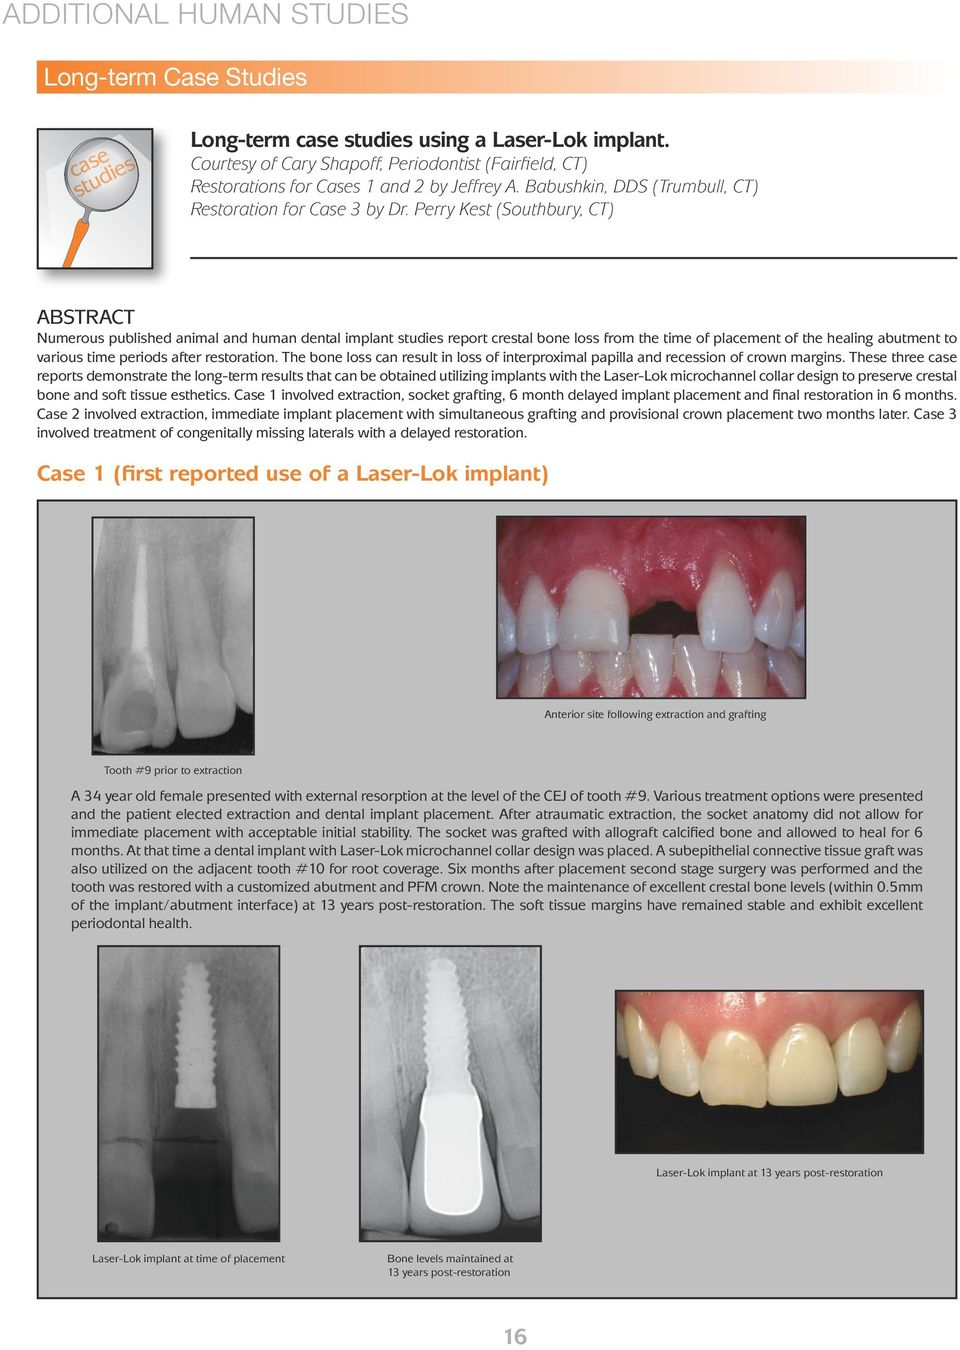 Perry Kest (Southbury, CT) Numerous published animal and human dental implant studies report crestal bone loss from the time of placement of the healing abutment to various time periods after